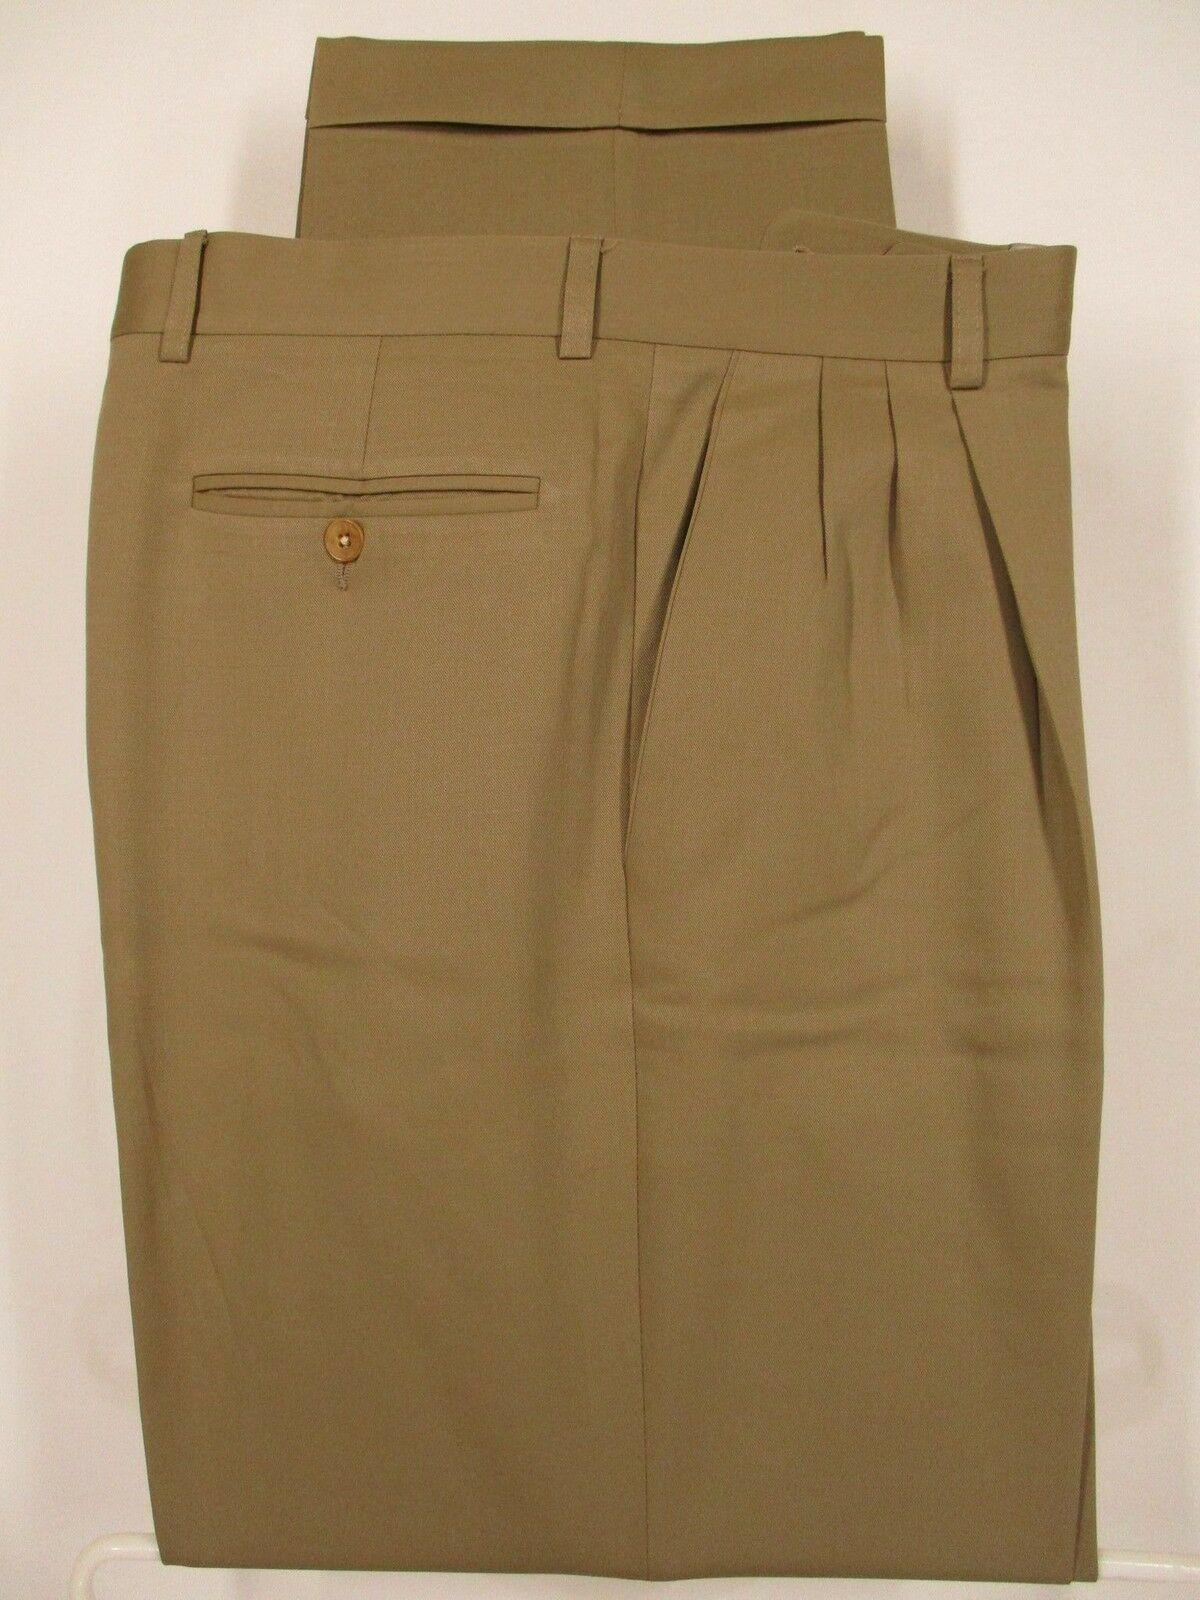 Zanella Mens Beige Pleated Wool Dress Pants size 34 34x31